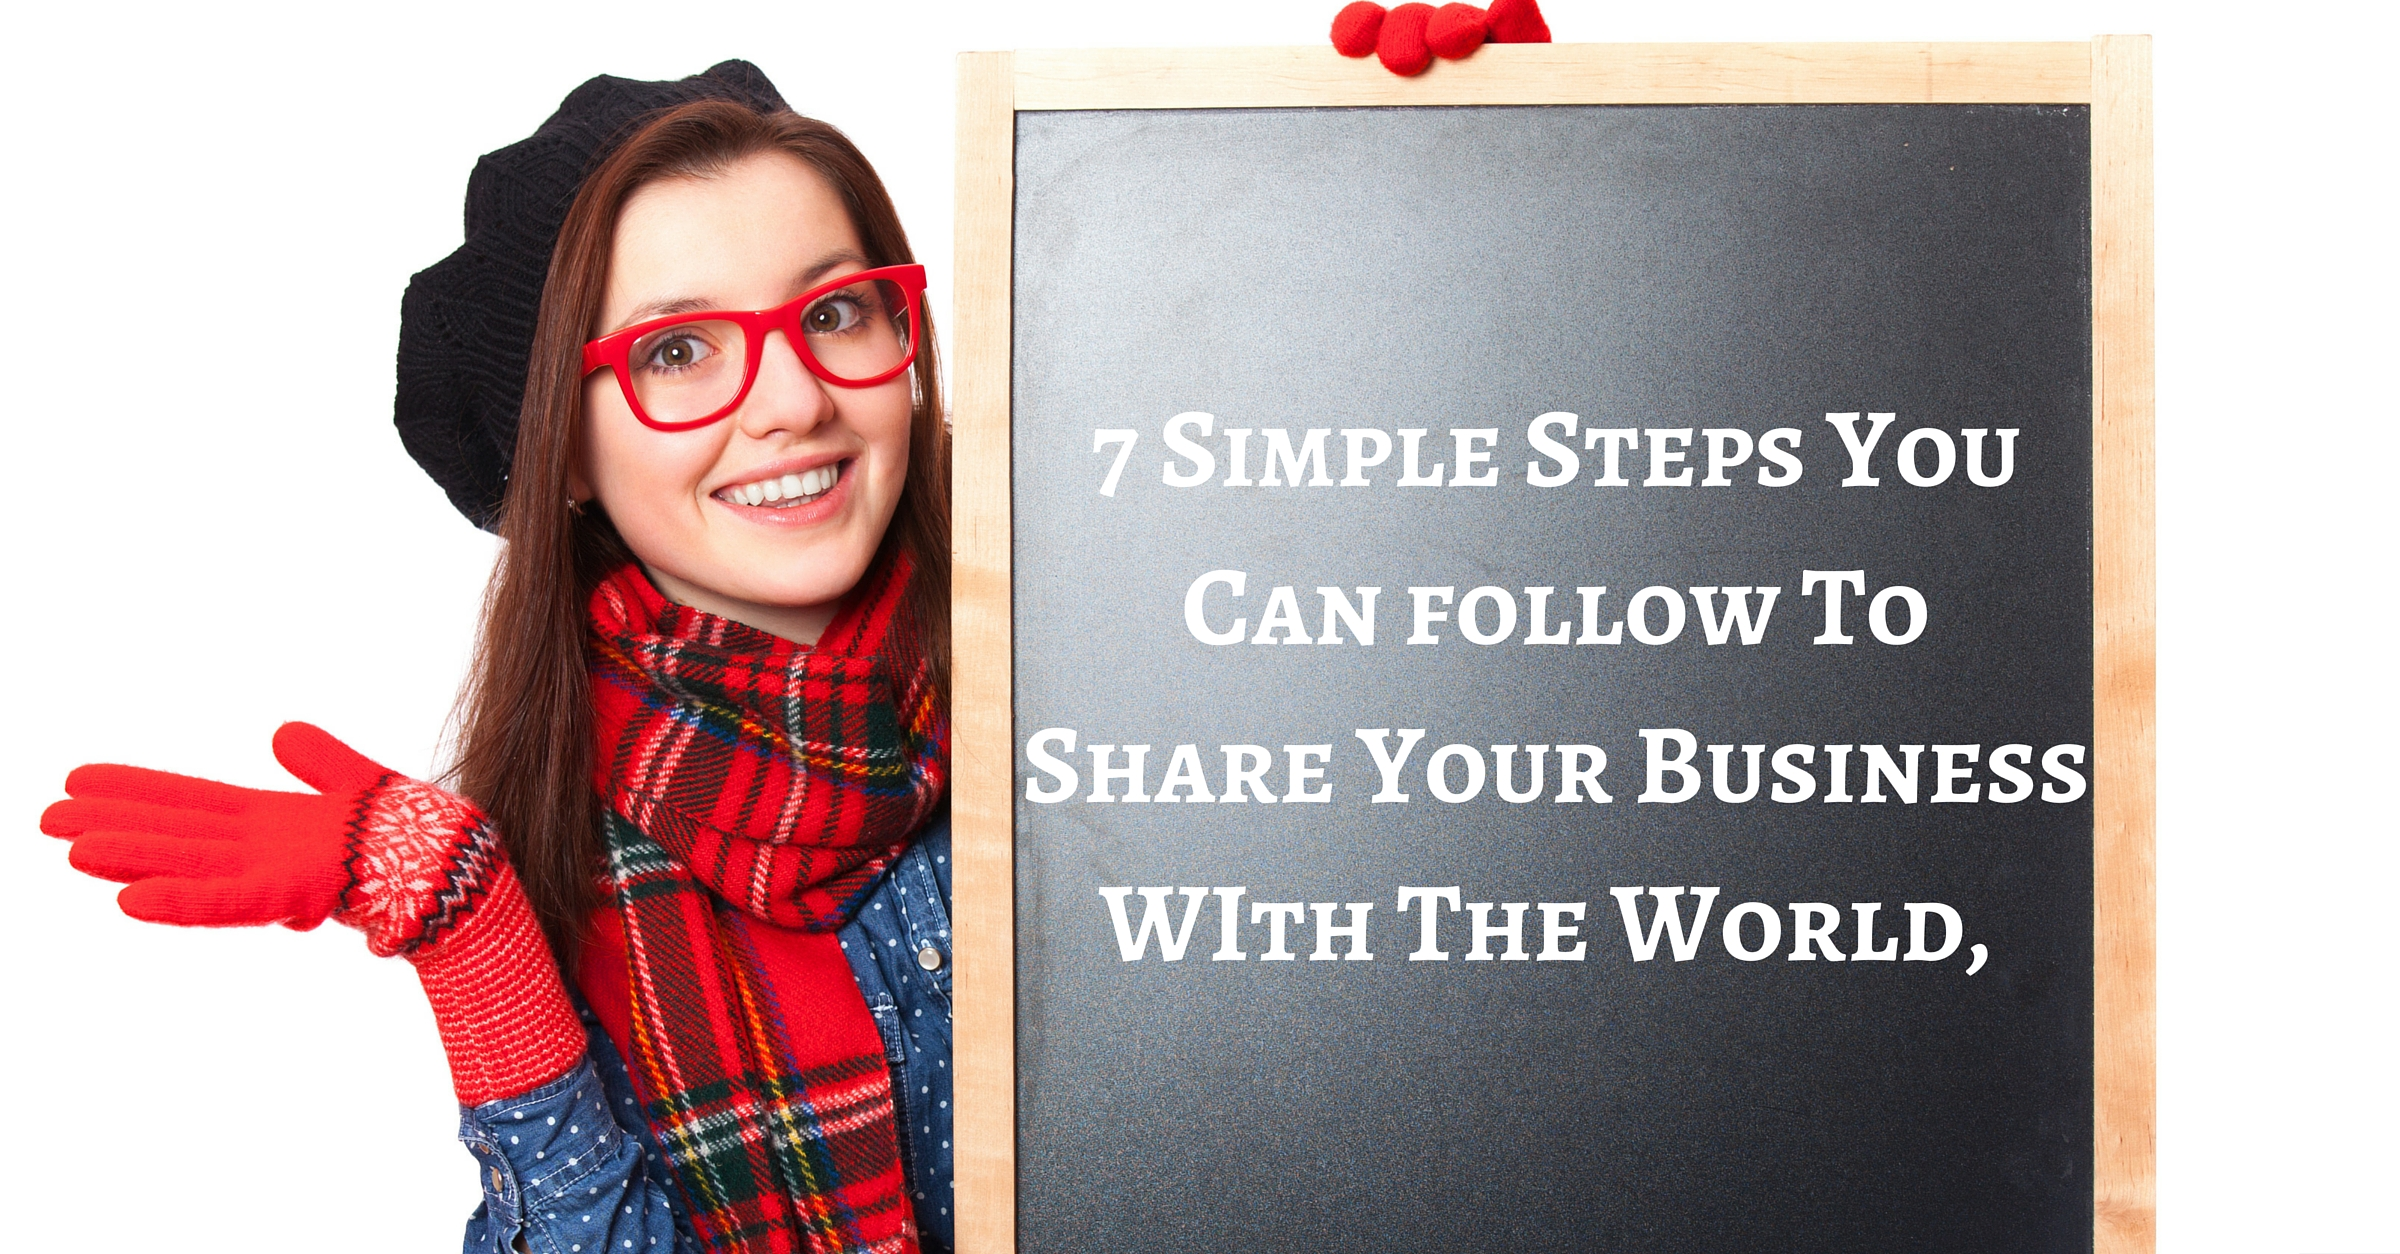 7 Simple Steps You Can Do To Share Your Business WIth The World, Even If You Are Pretty Darned Nervous About Speaking Up!